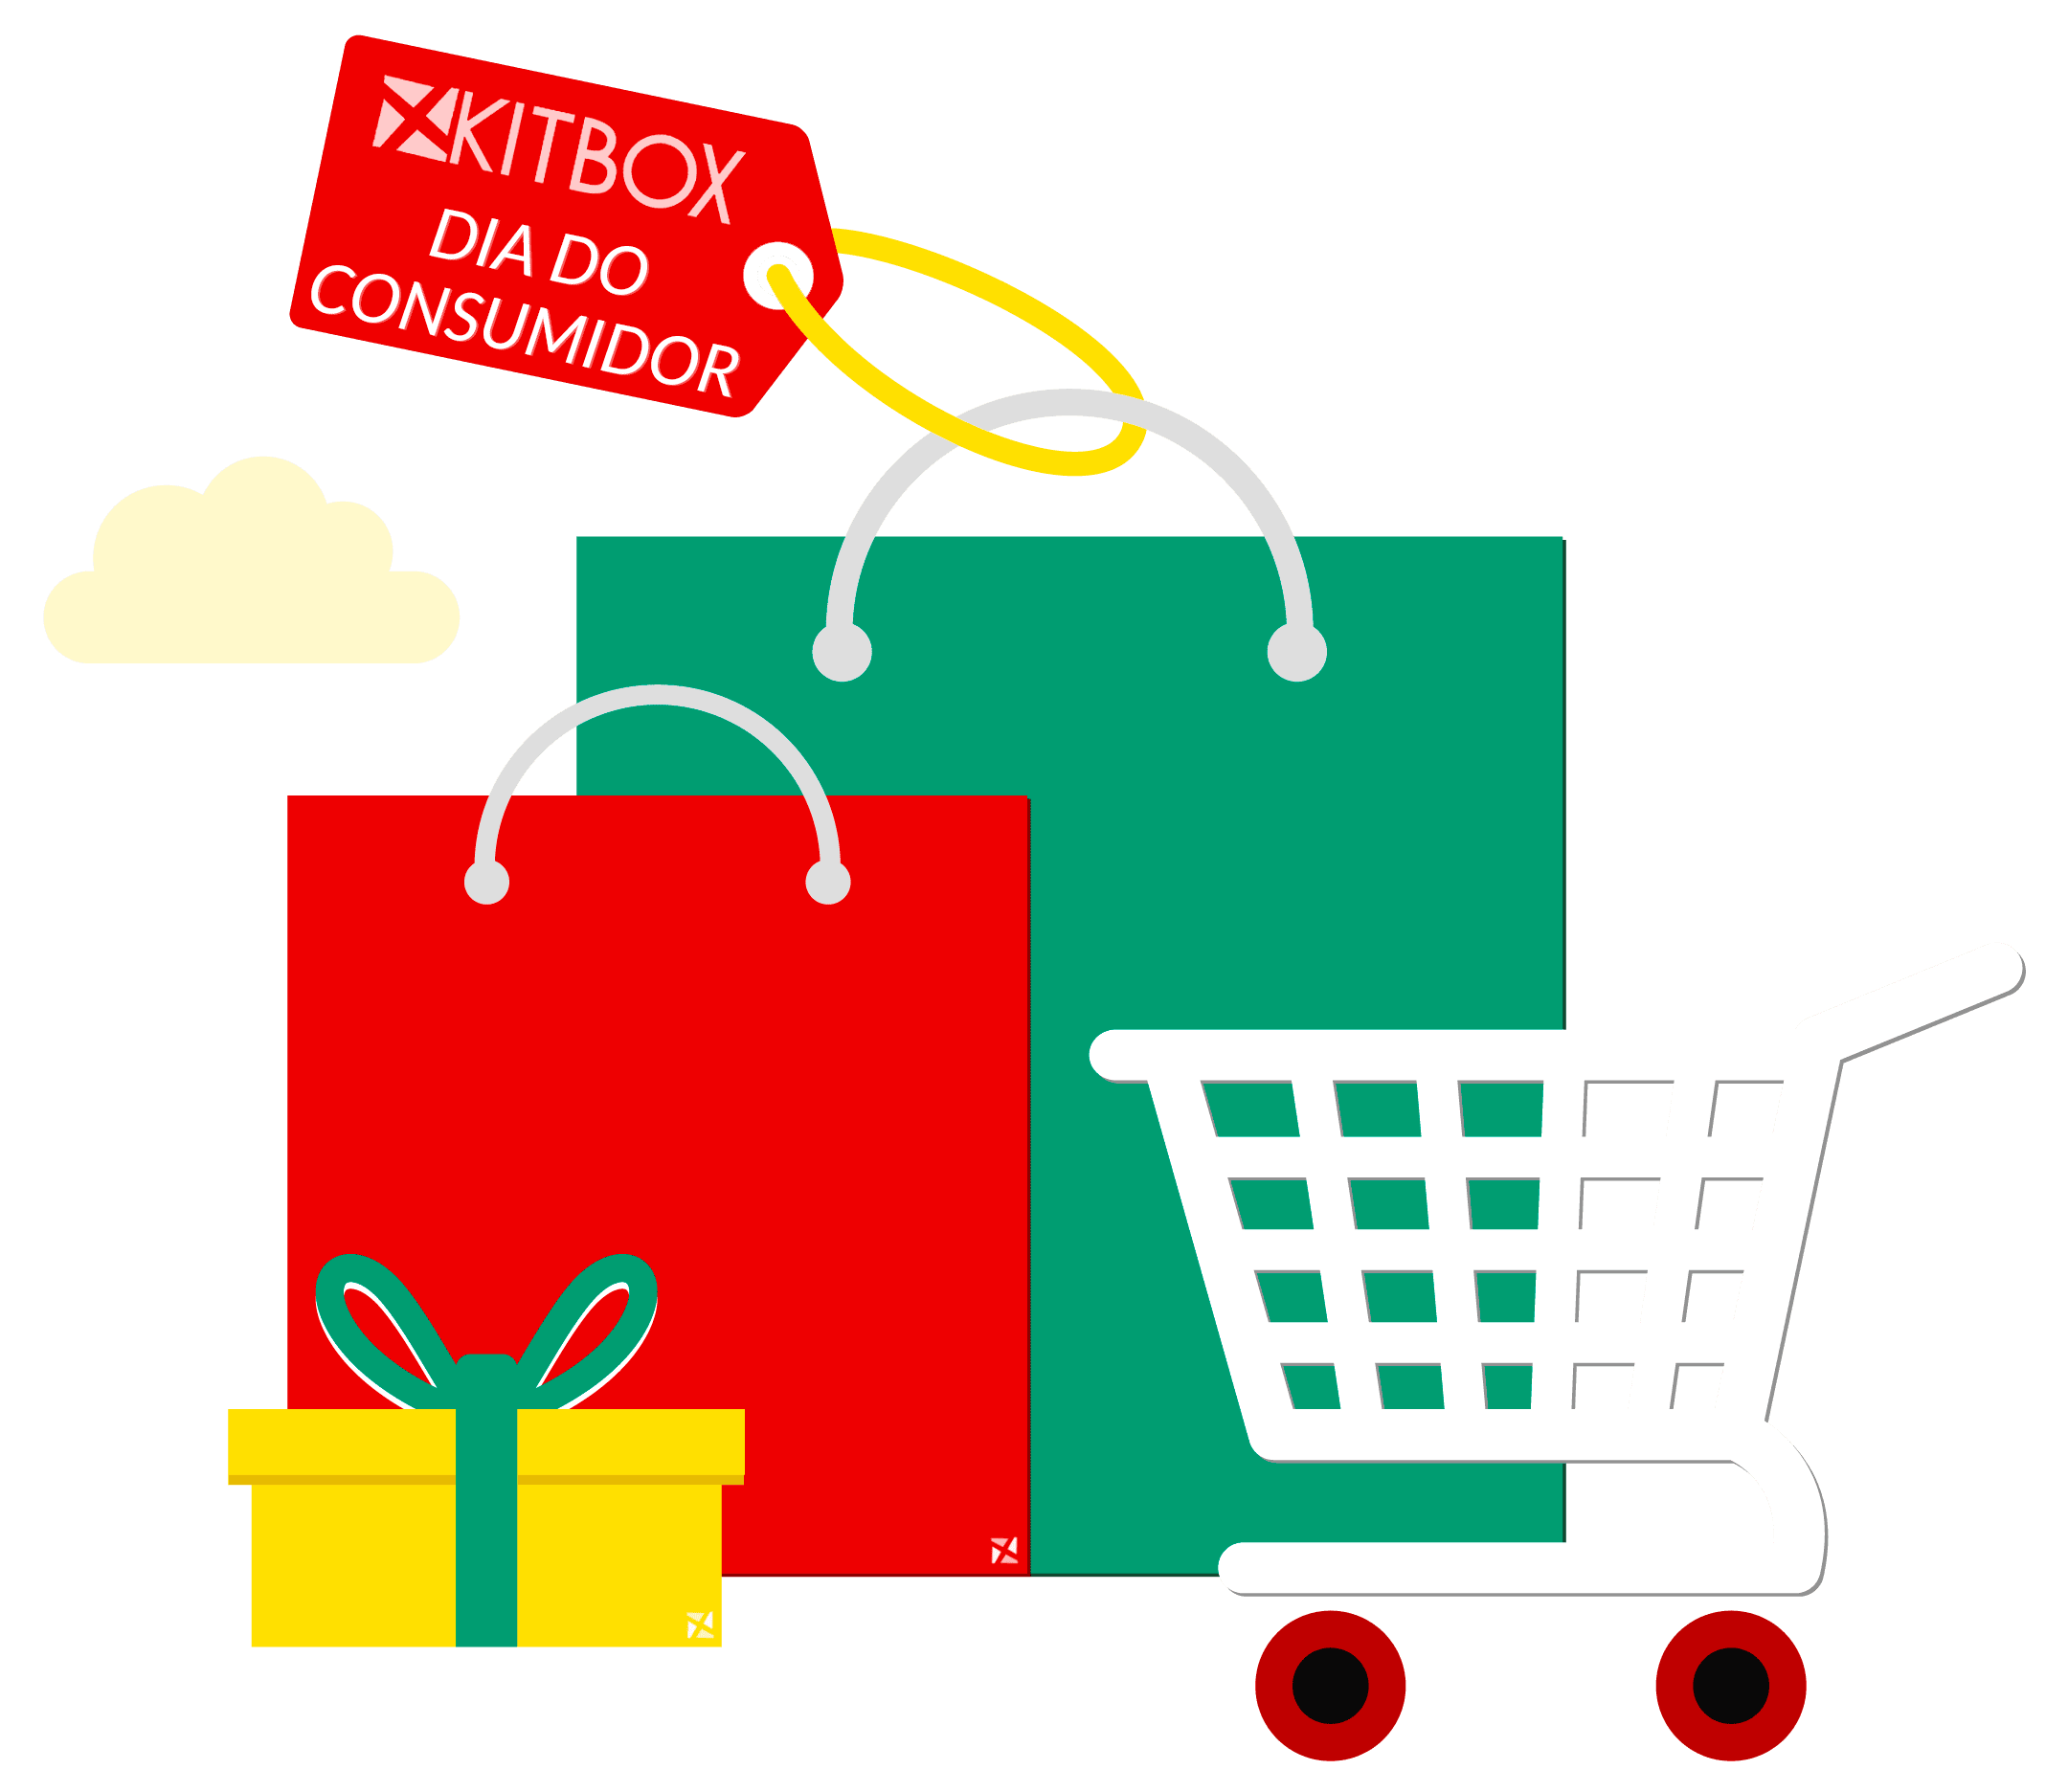 Ofertas do Dia do Consumidor 70% off